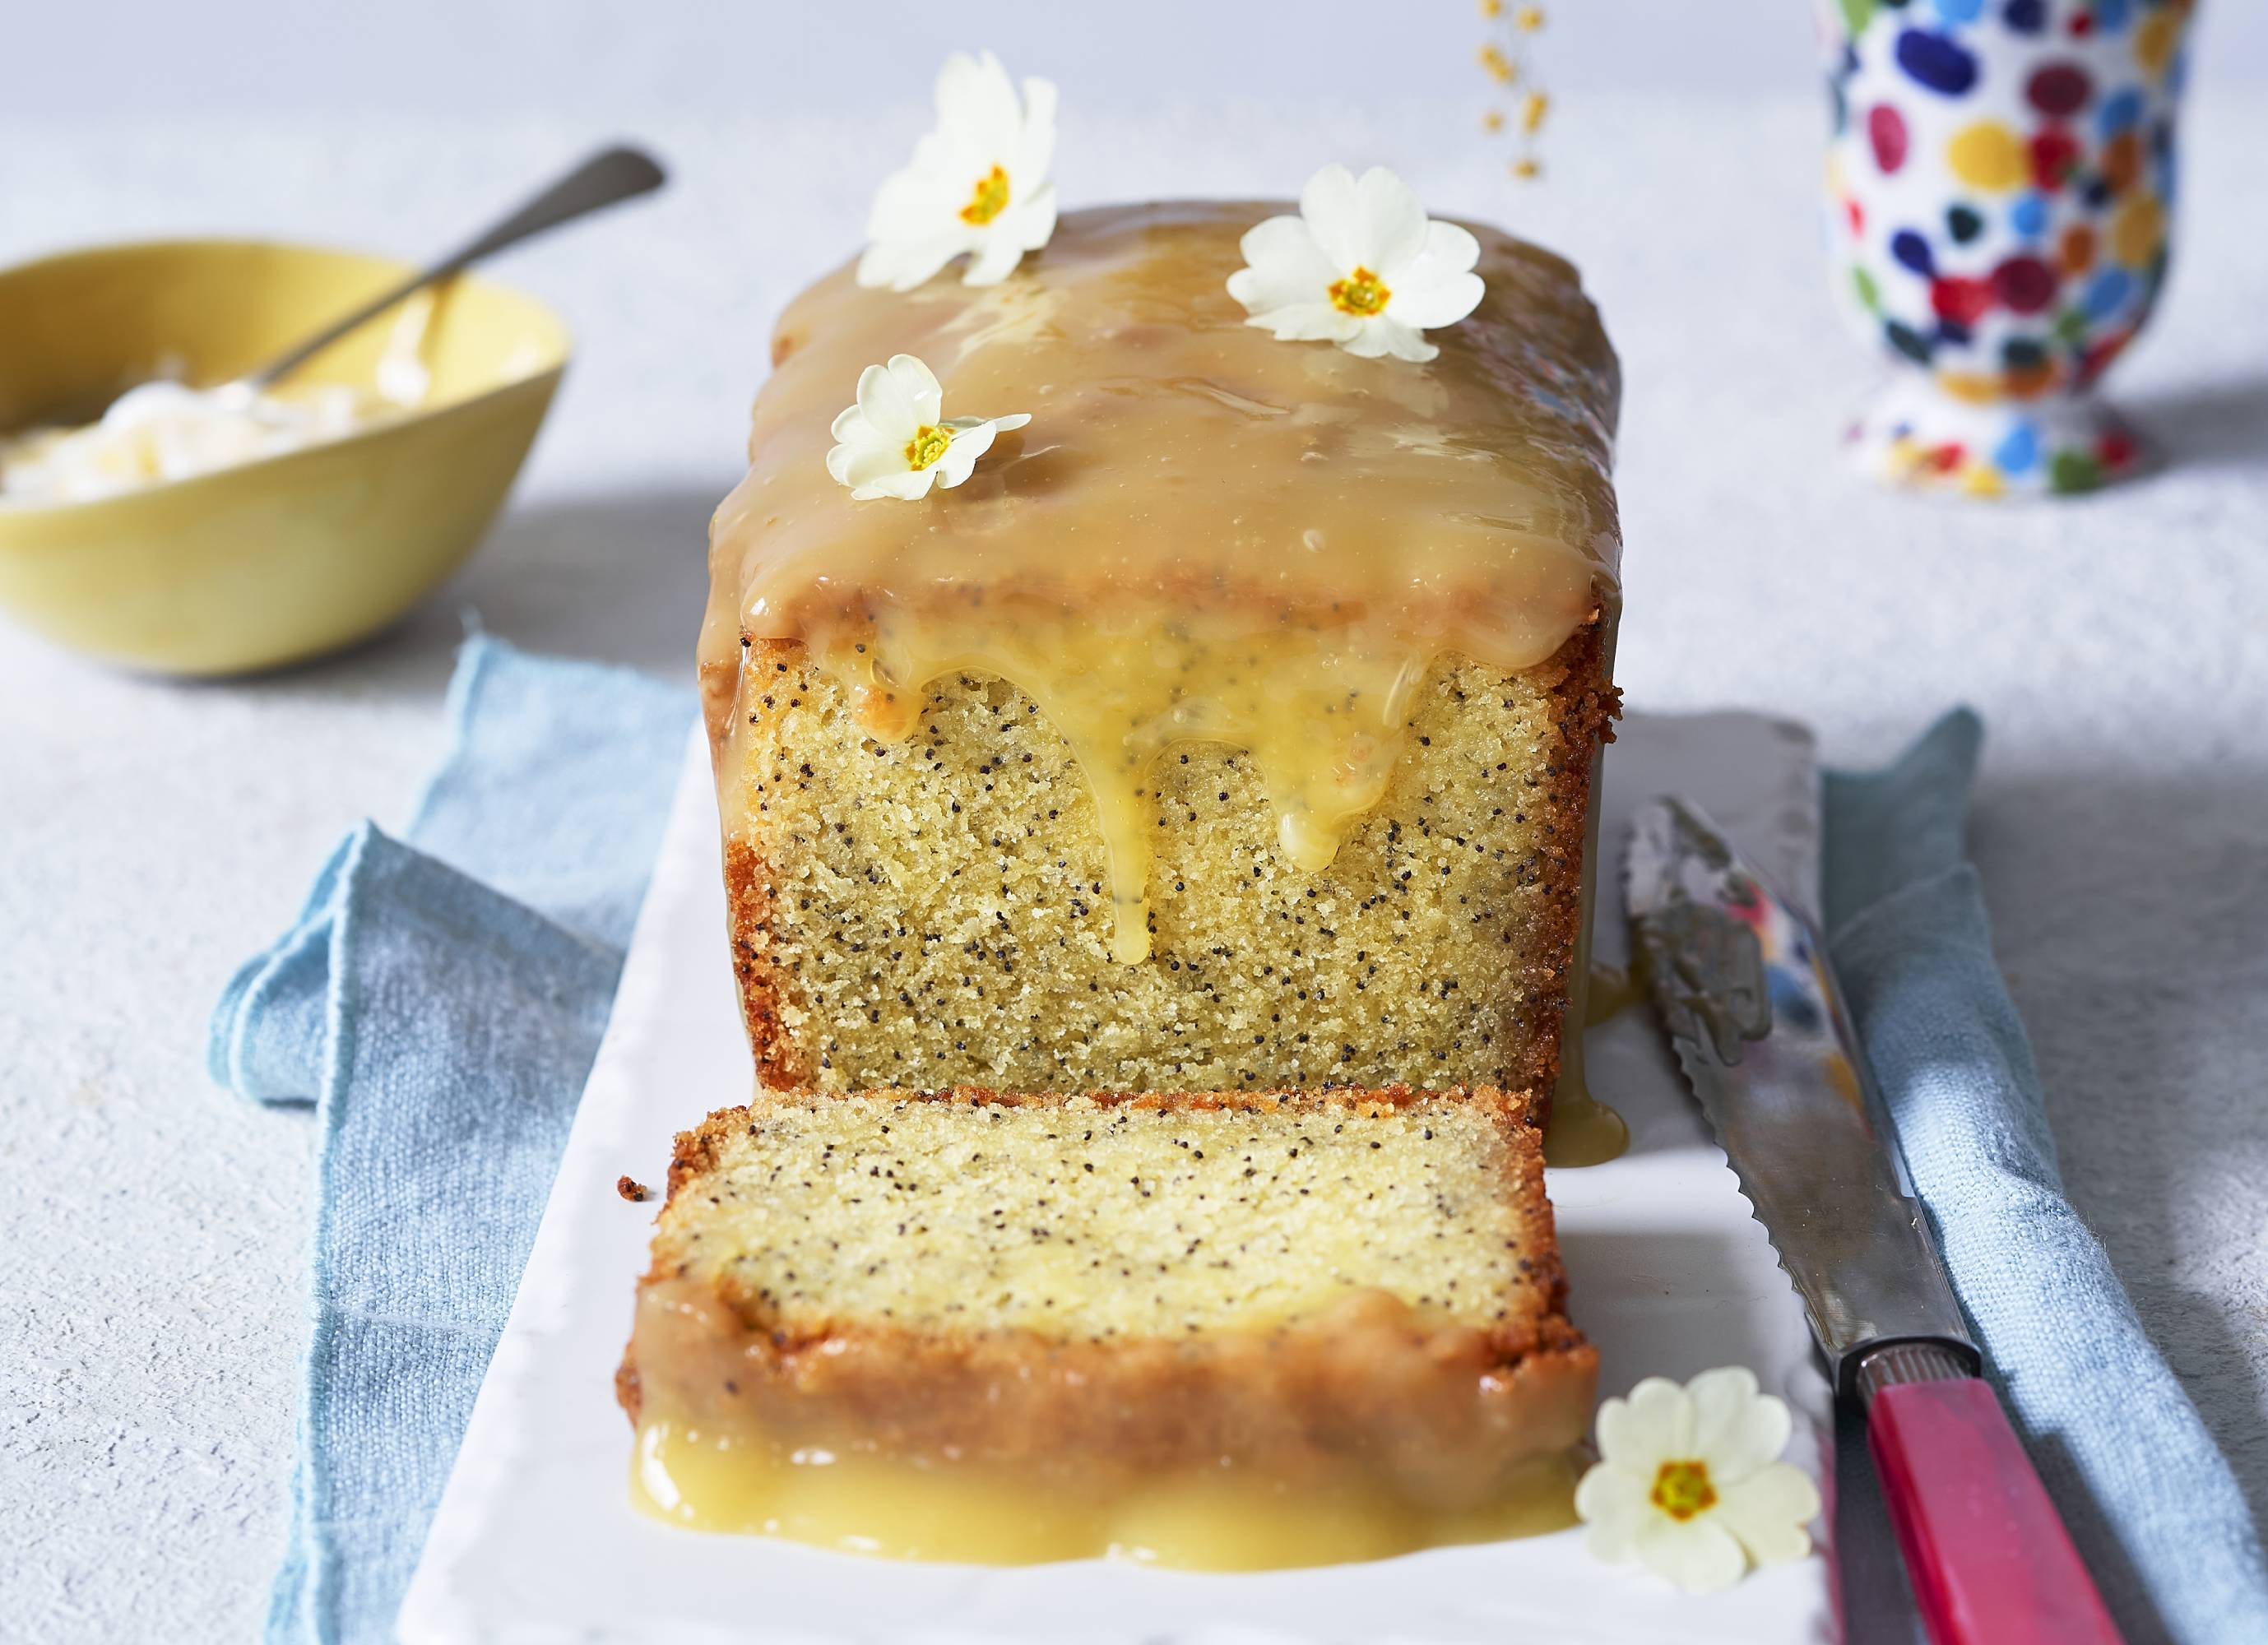 Try this zesty gluten-free lemon and poppy seed cake for the perfect afternoon tea